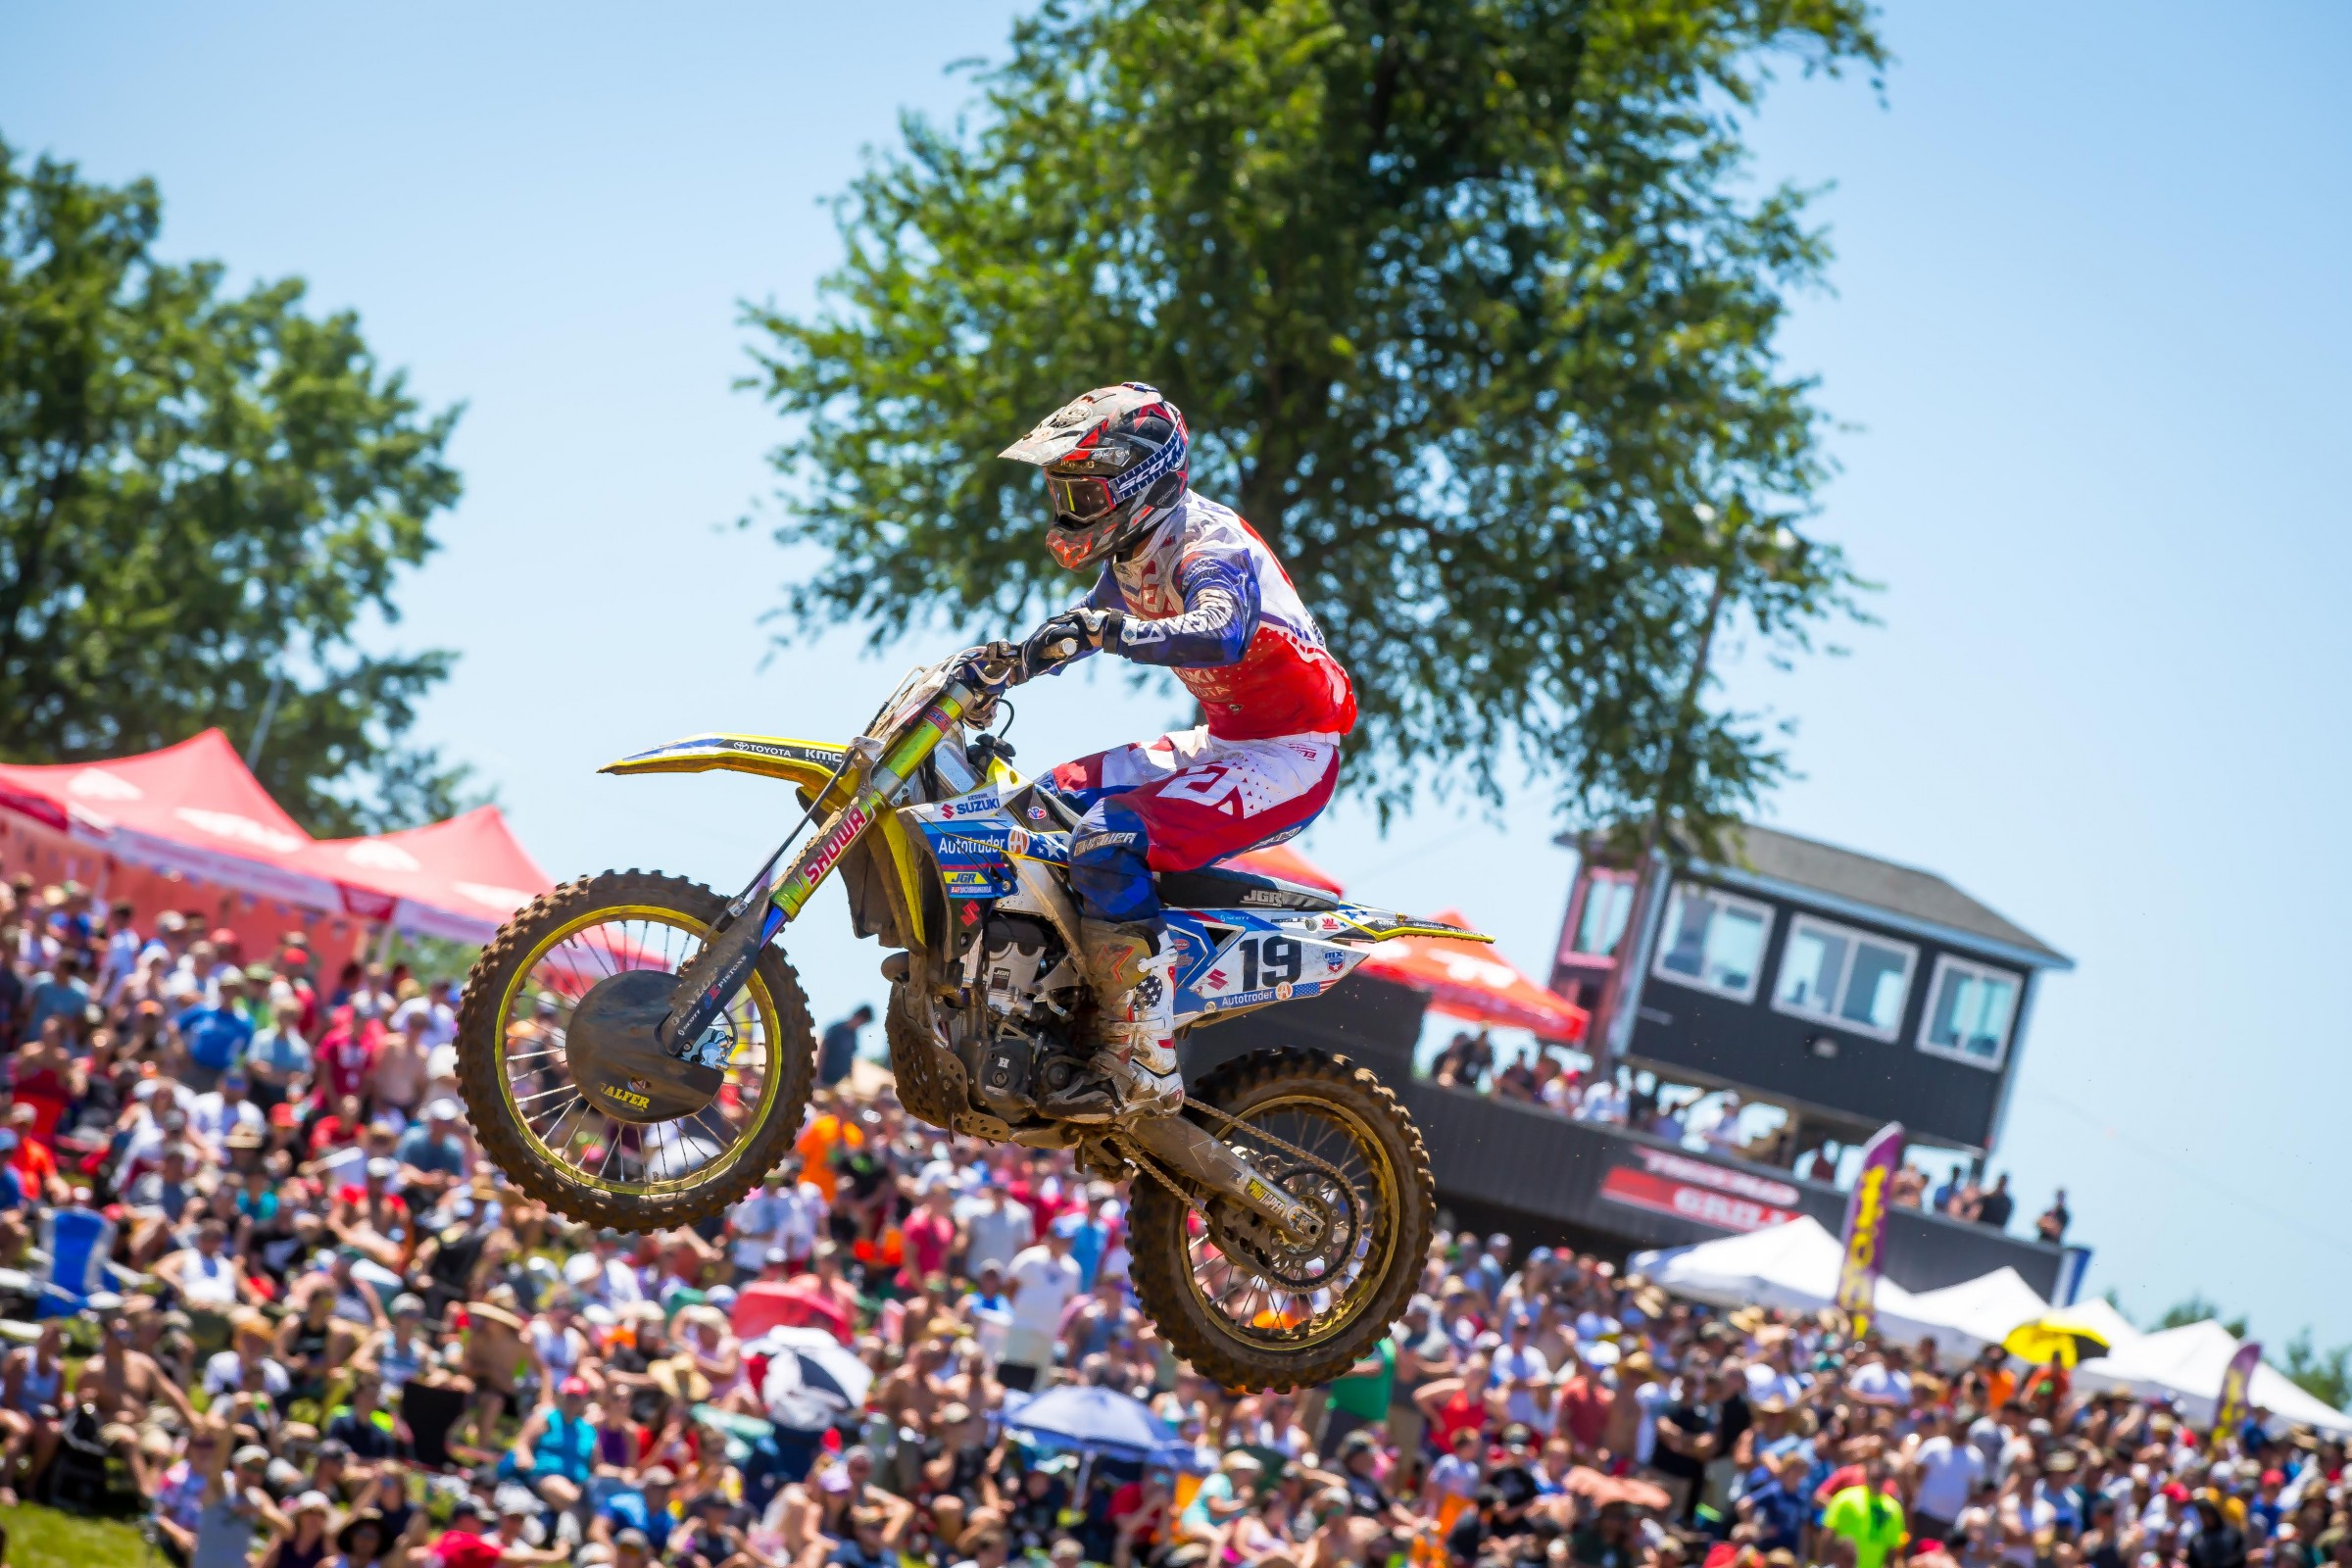 Bogle entered the top 20 with 24-18 moto scores in his second race back from injury at RedBud.